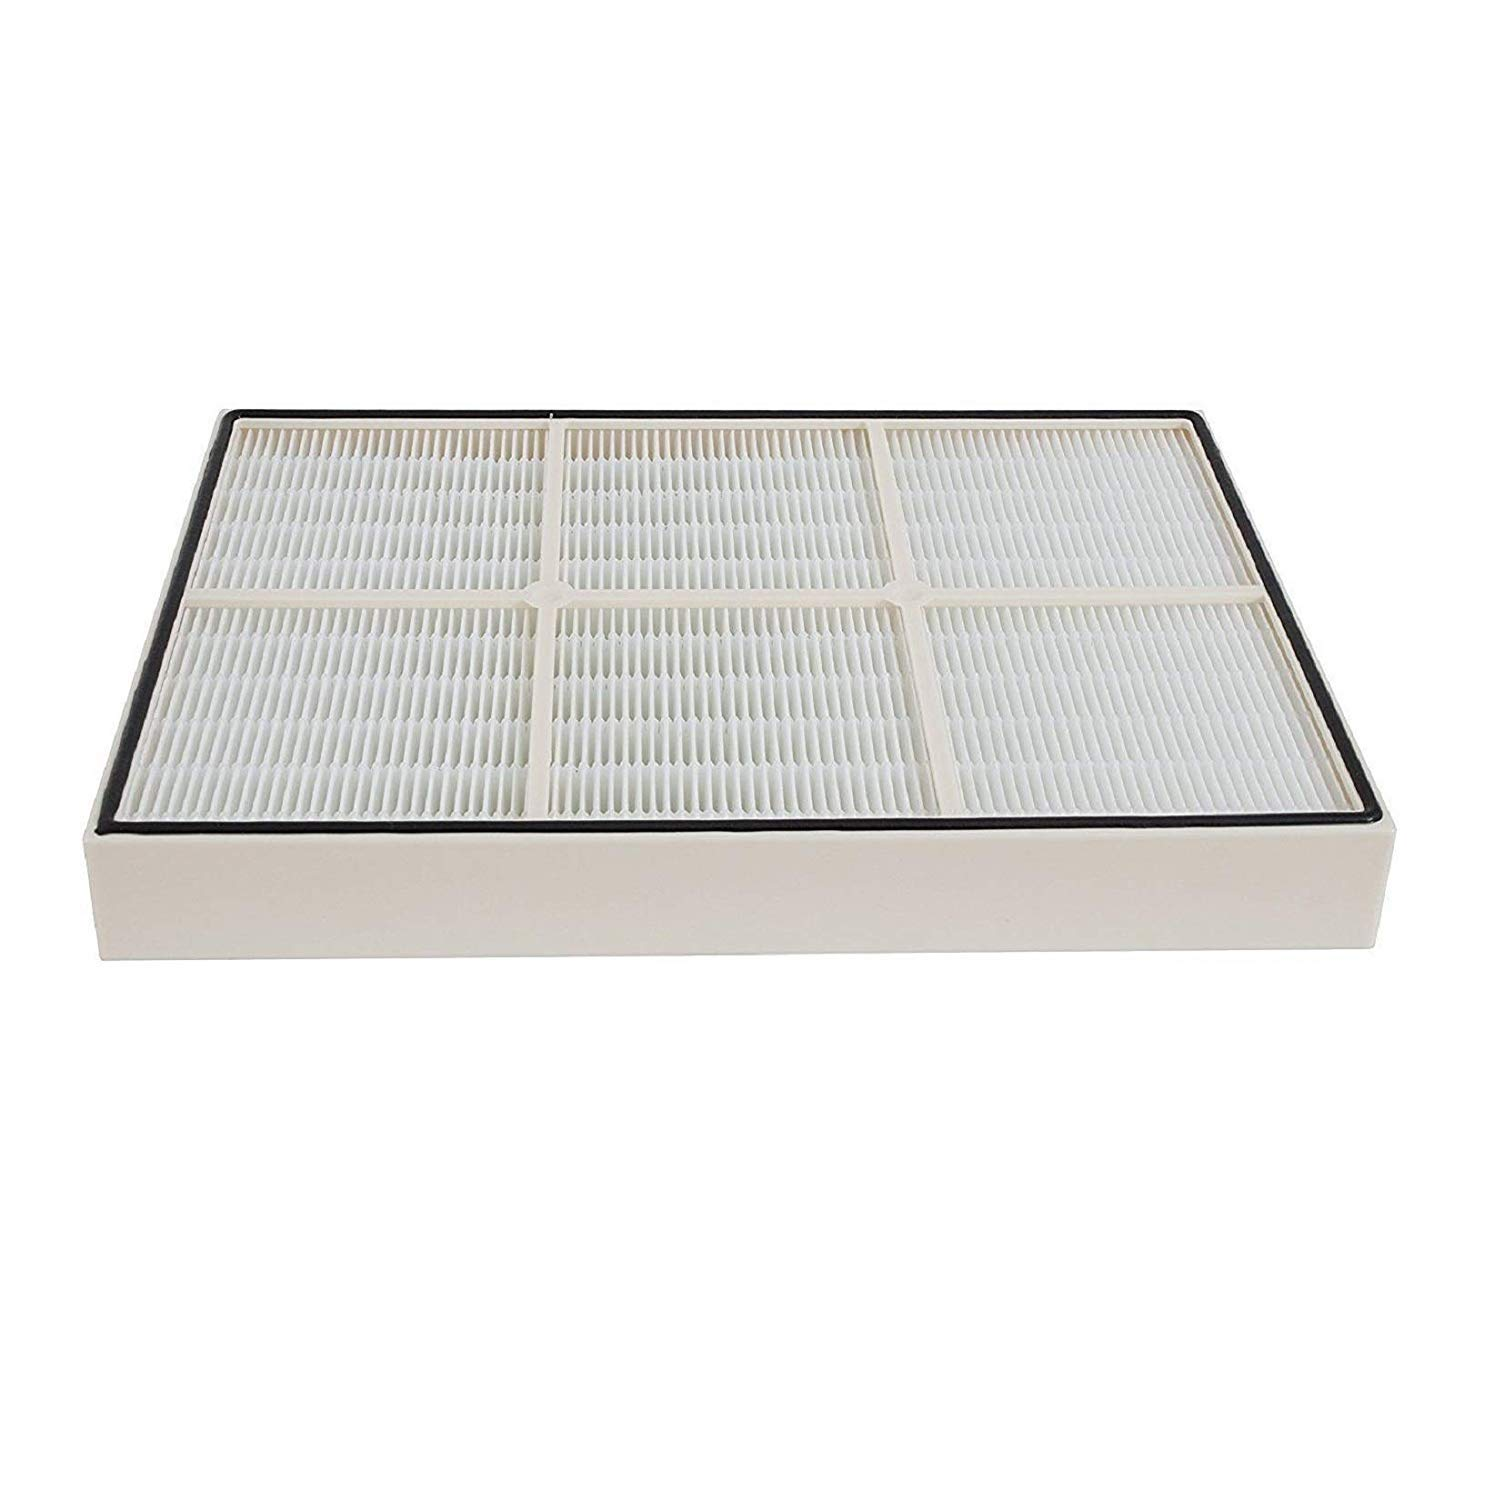 Replacement HEPA Filter fits Hunter 30610 30611 Air Purifiers 40882 40884 408841